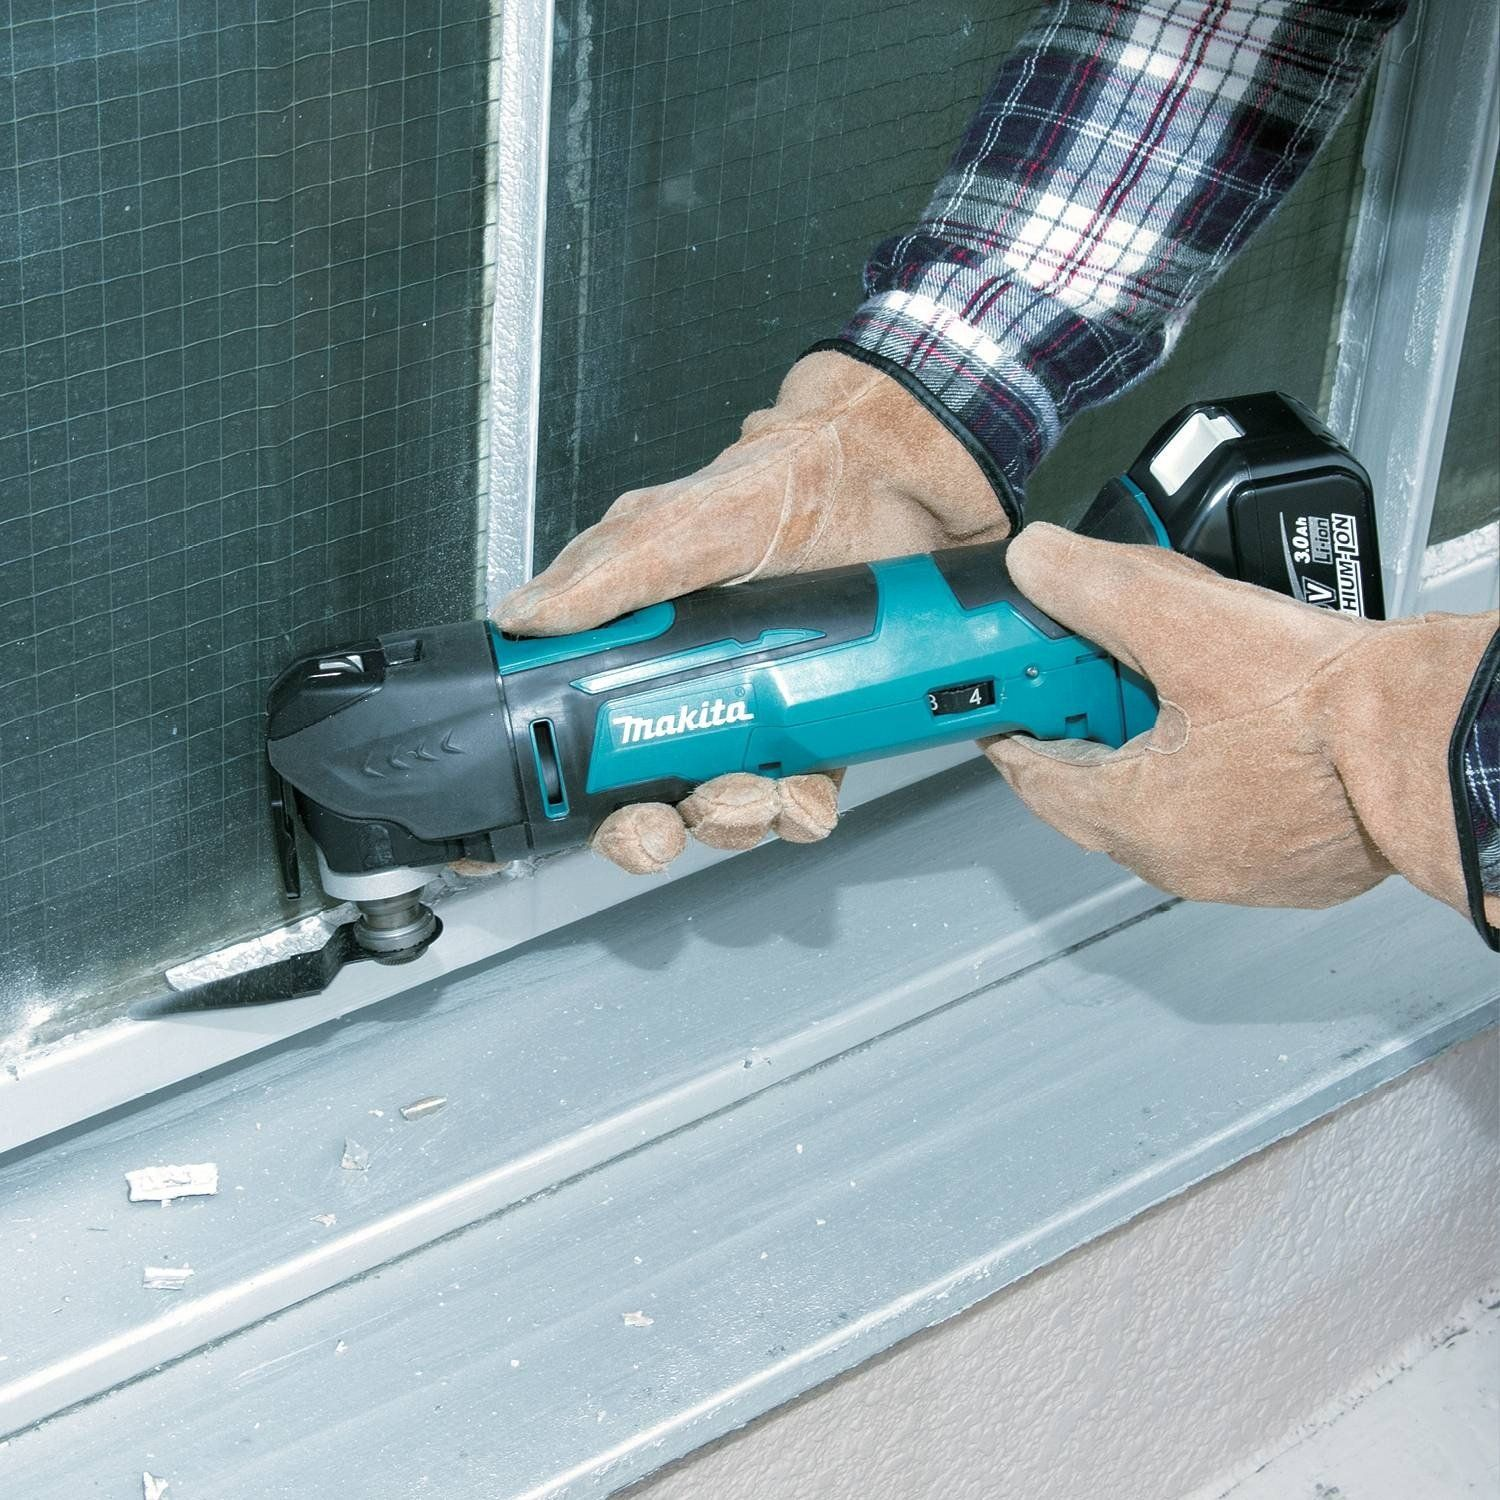 Makita Xmt03z 18v Lxt Lithiumion Cordless Multitool Tool Only Review A Lot More Testimonials Of The Item By Going To The Web Link On Tools Multitool Makita